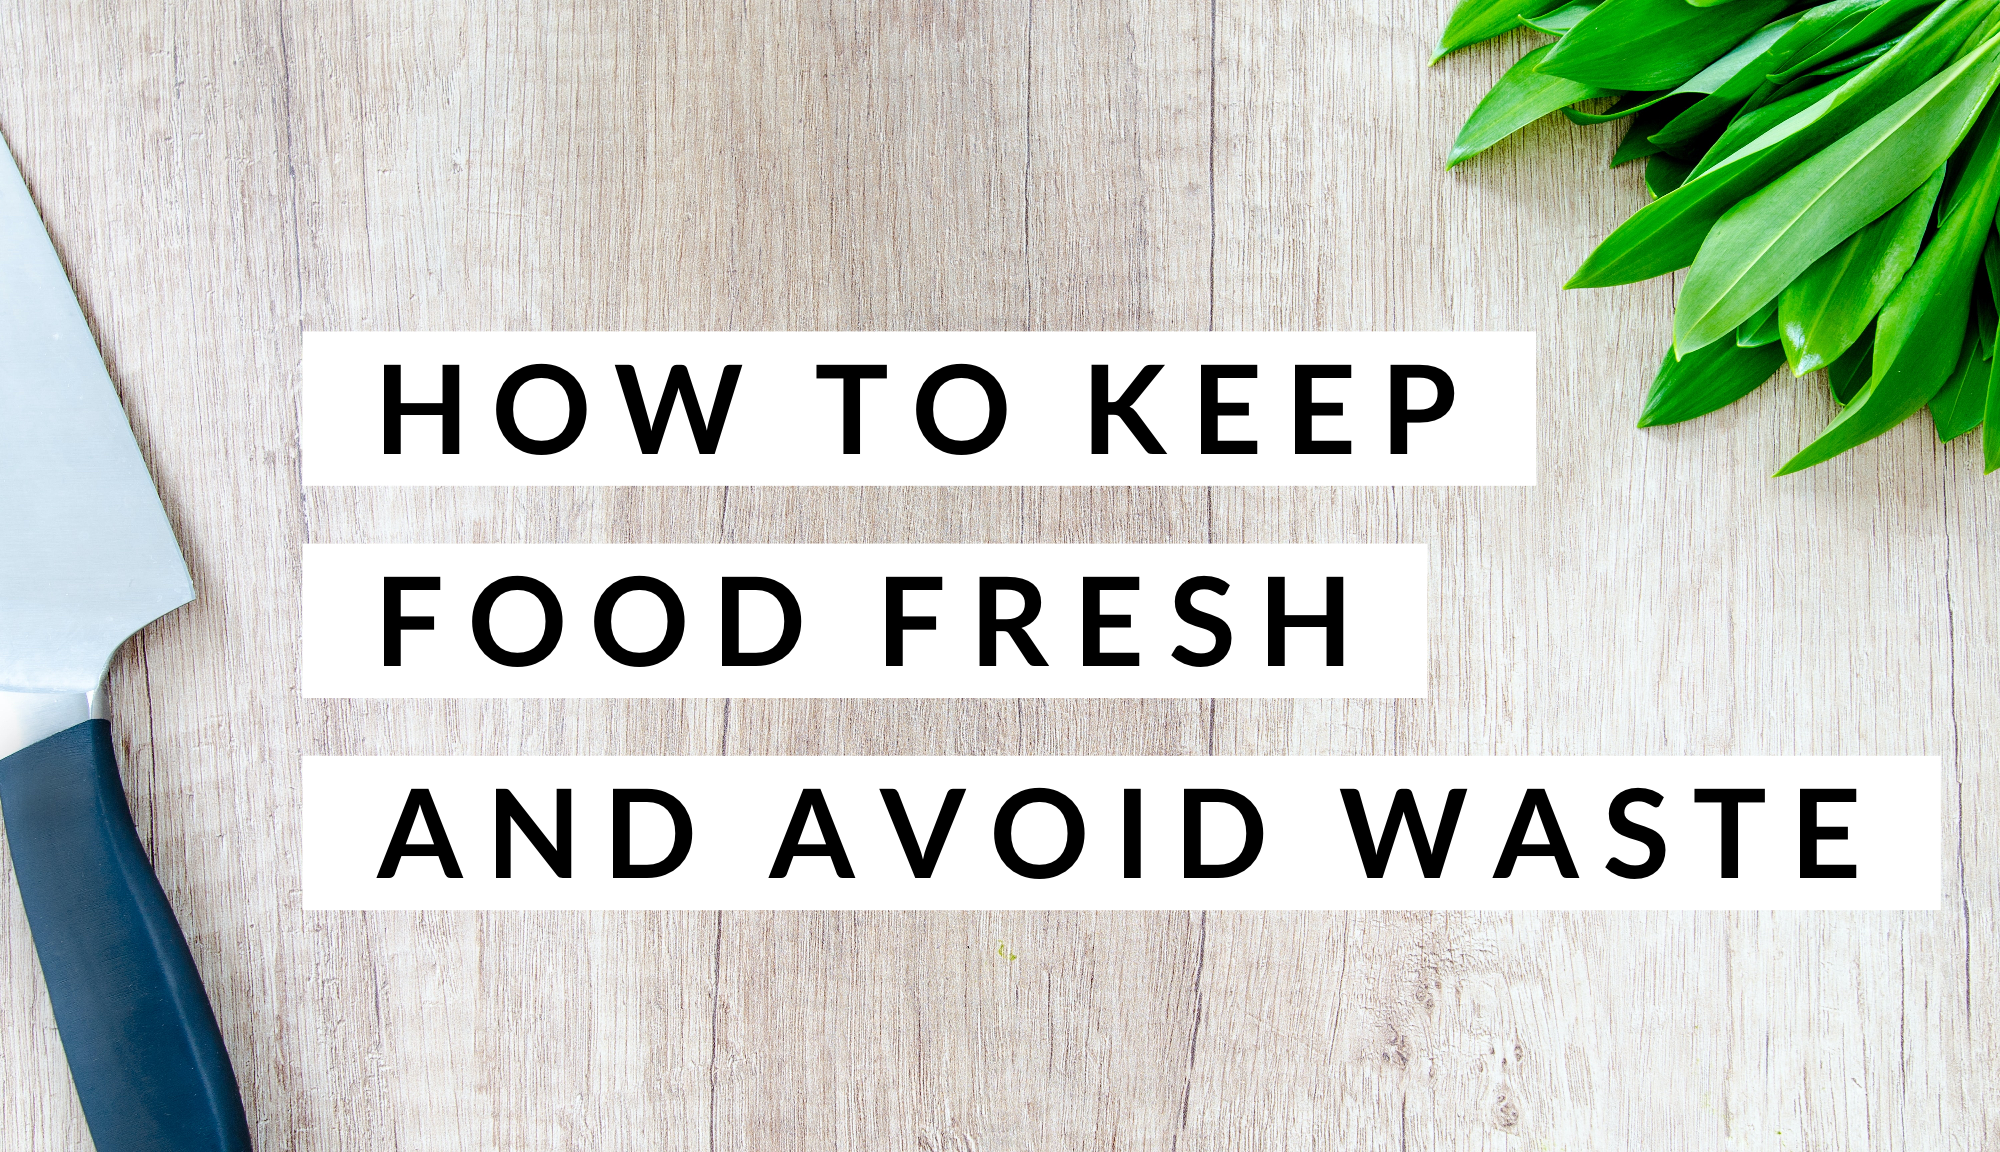 How to keep food fresh and avoid waste